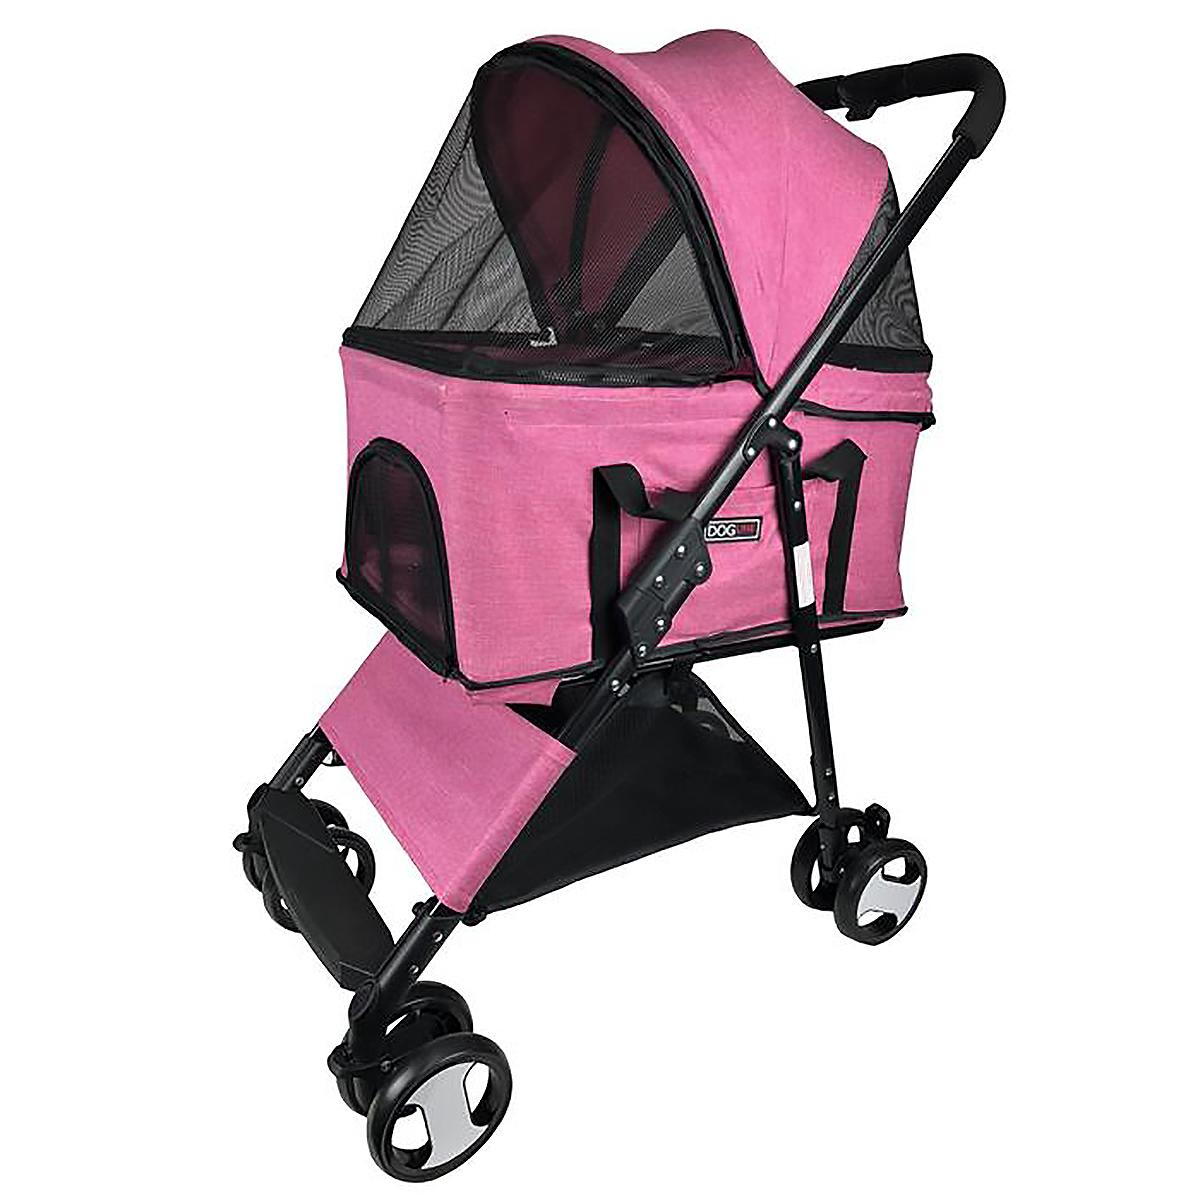 Executive Pet Stroller with Removable Cradle by Dogline - Pink